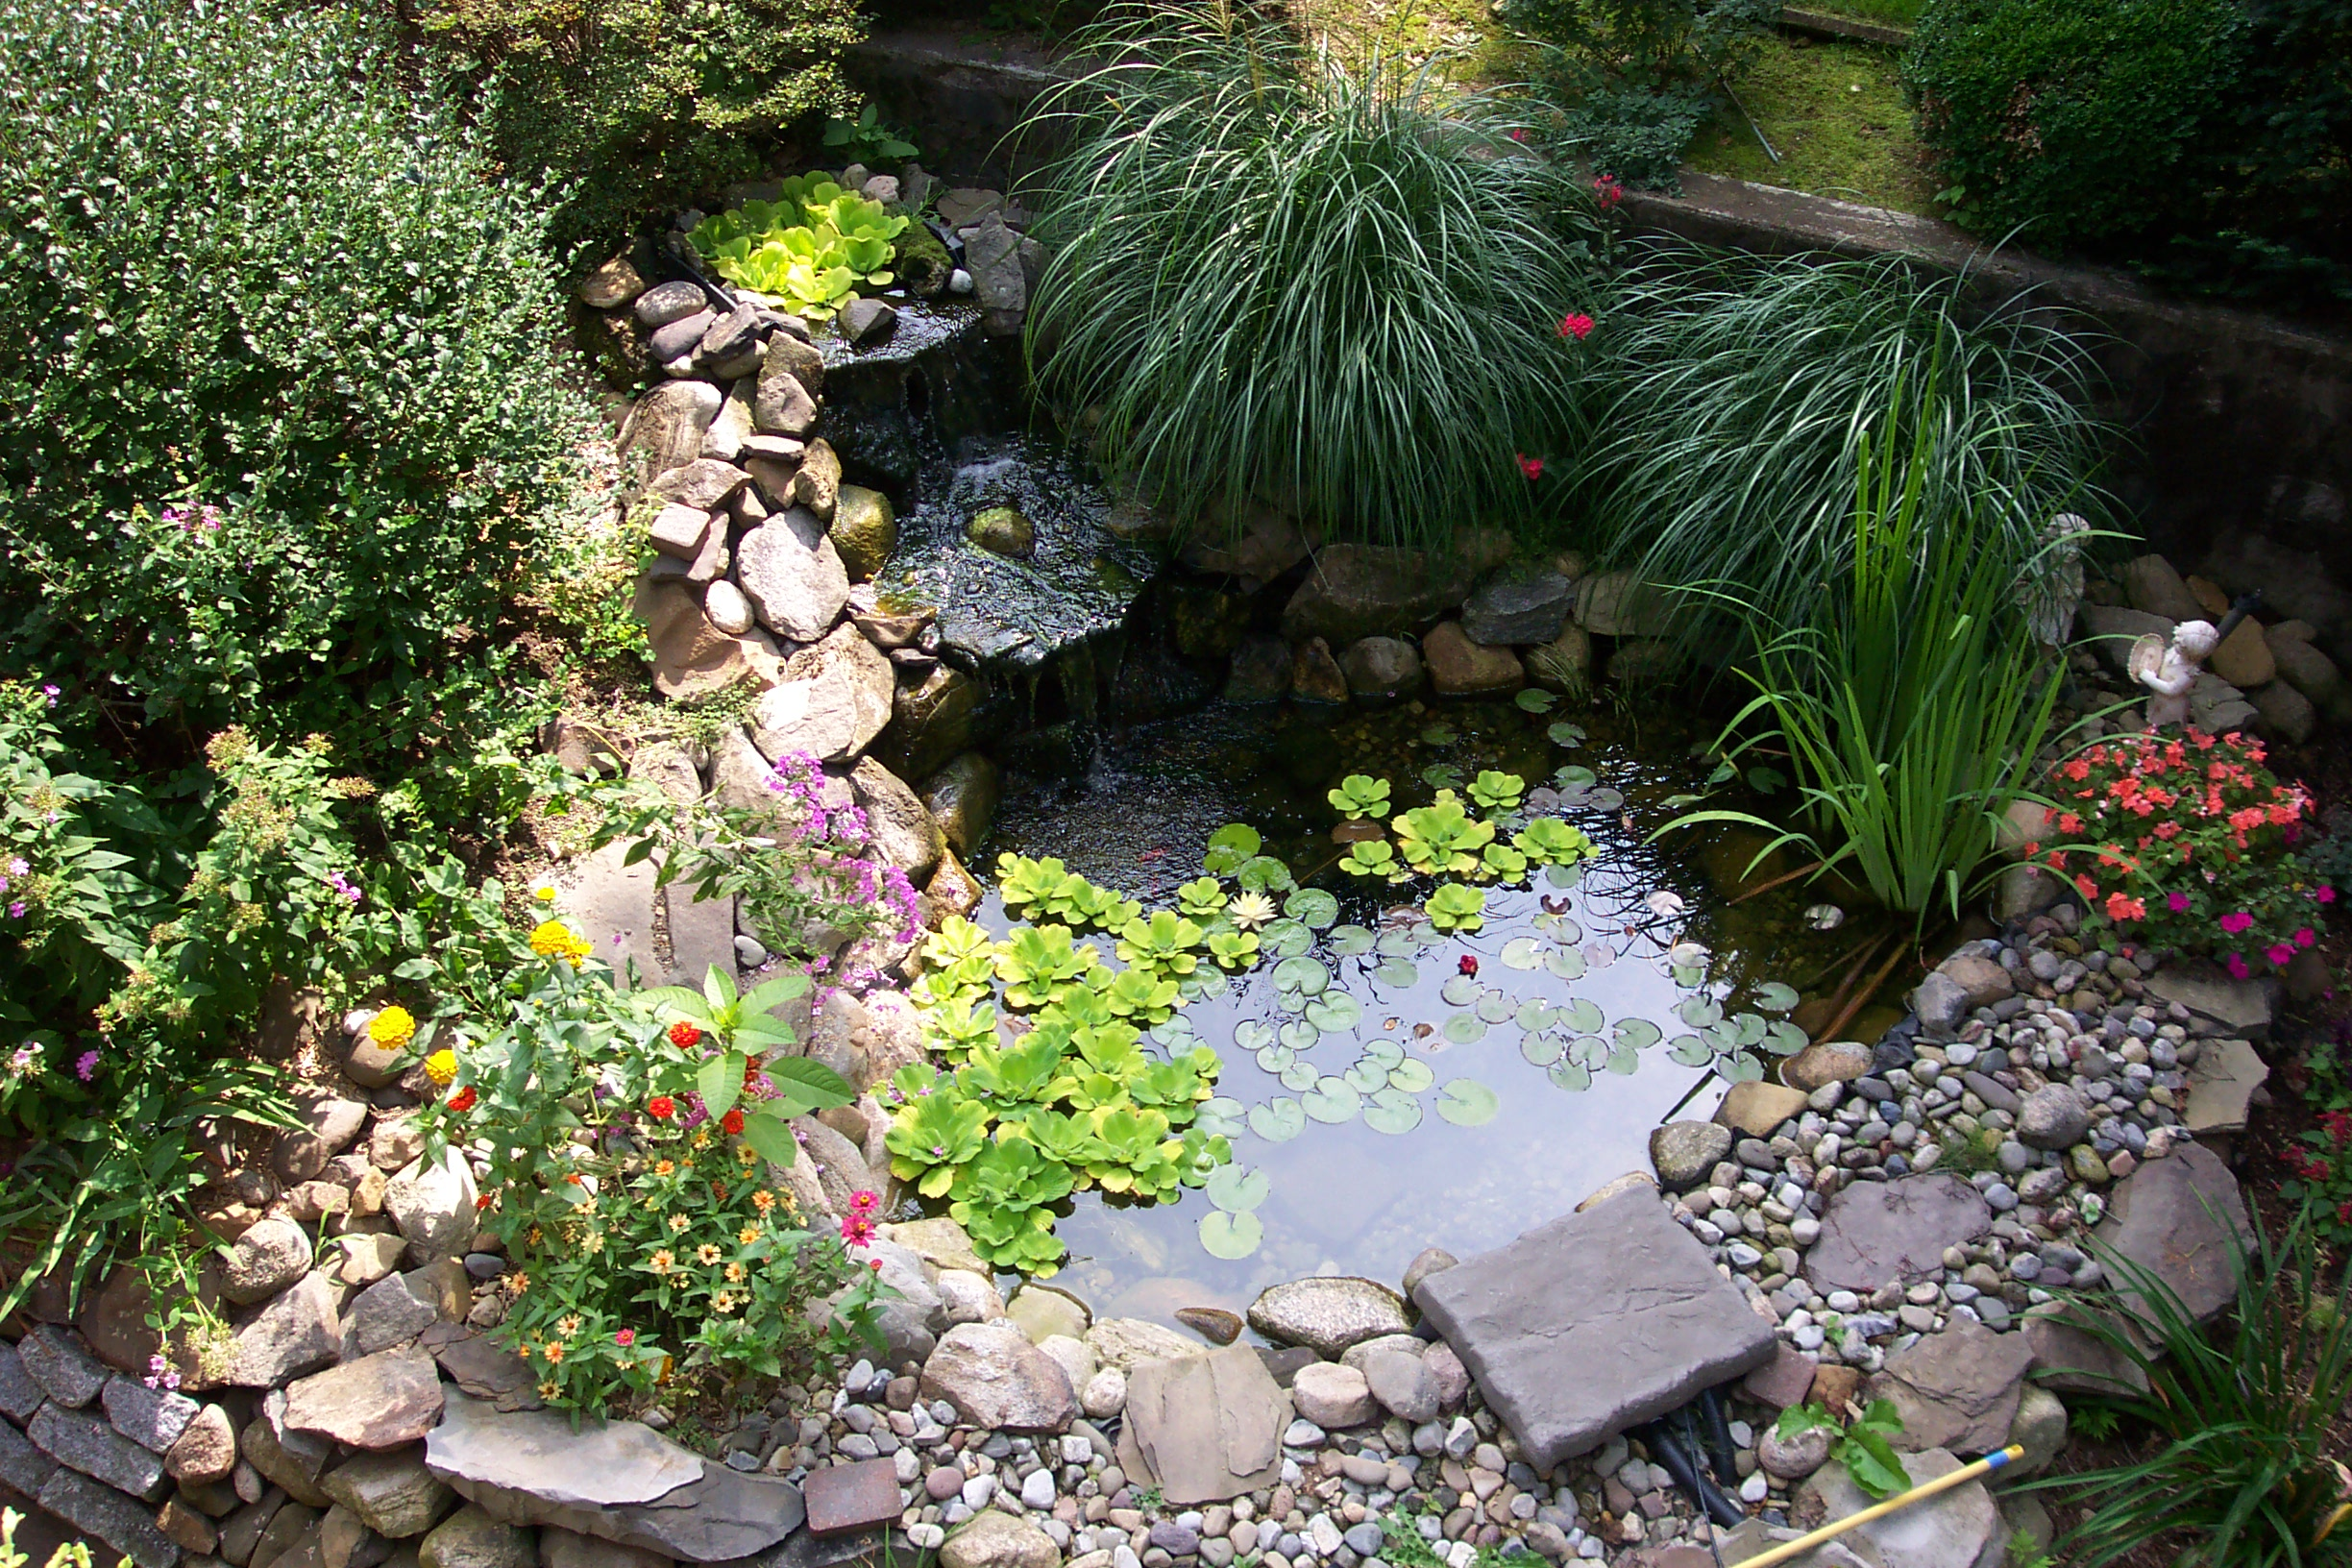 Amazing Backyard Pond Design Ideas - The WoW Style on Small Backyard Pond  id=52105